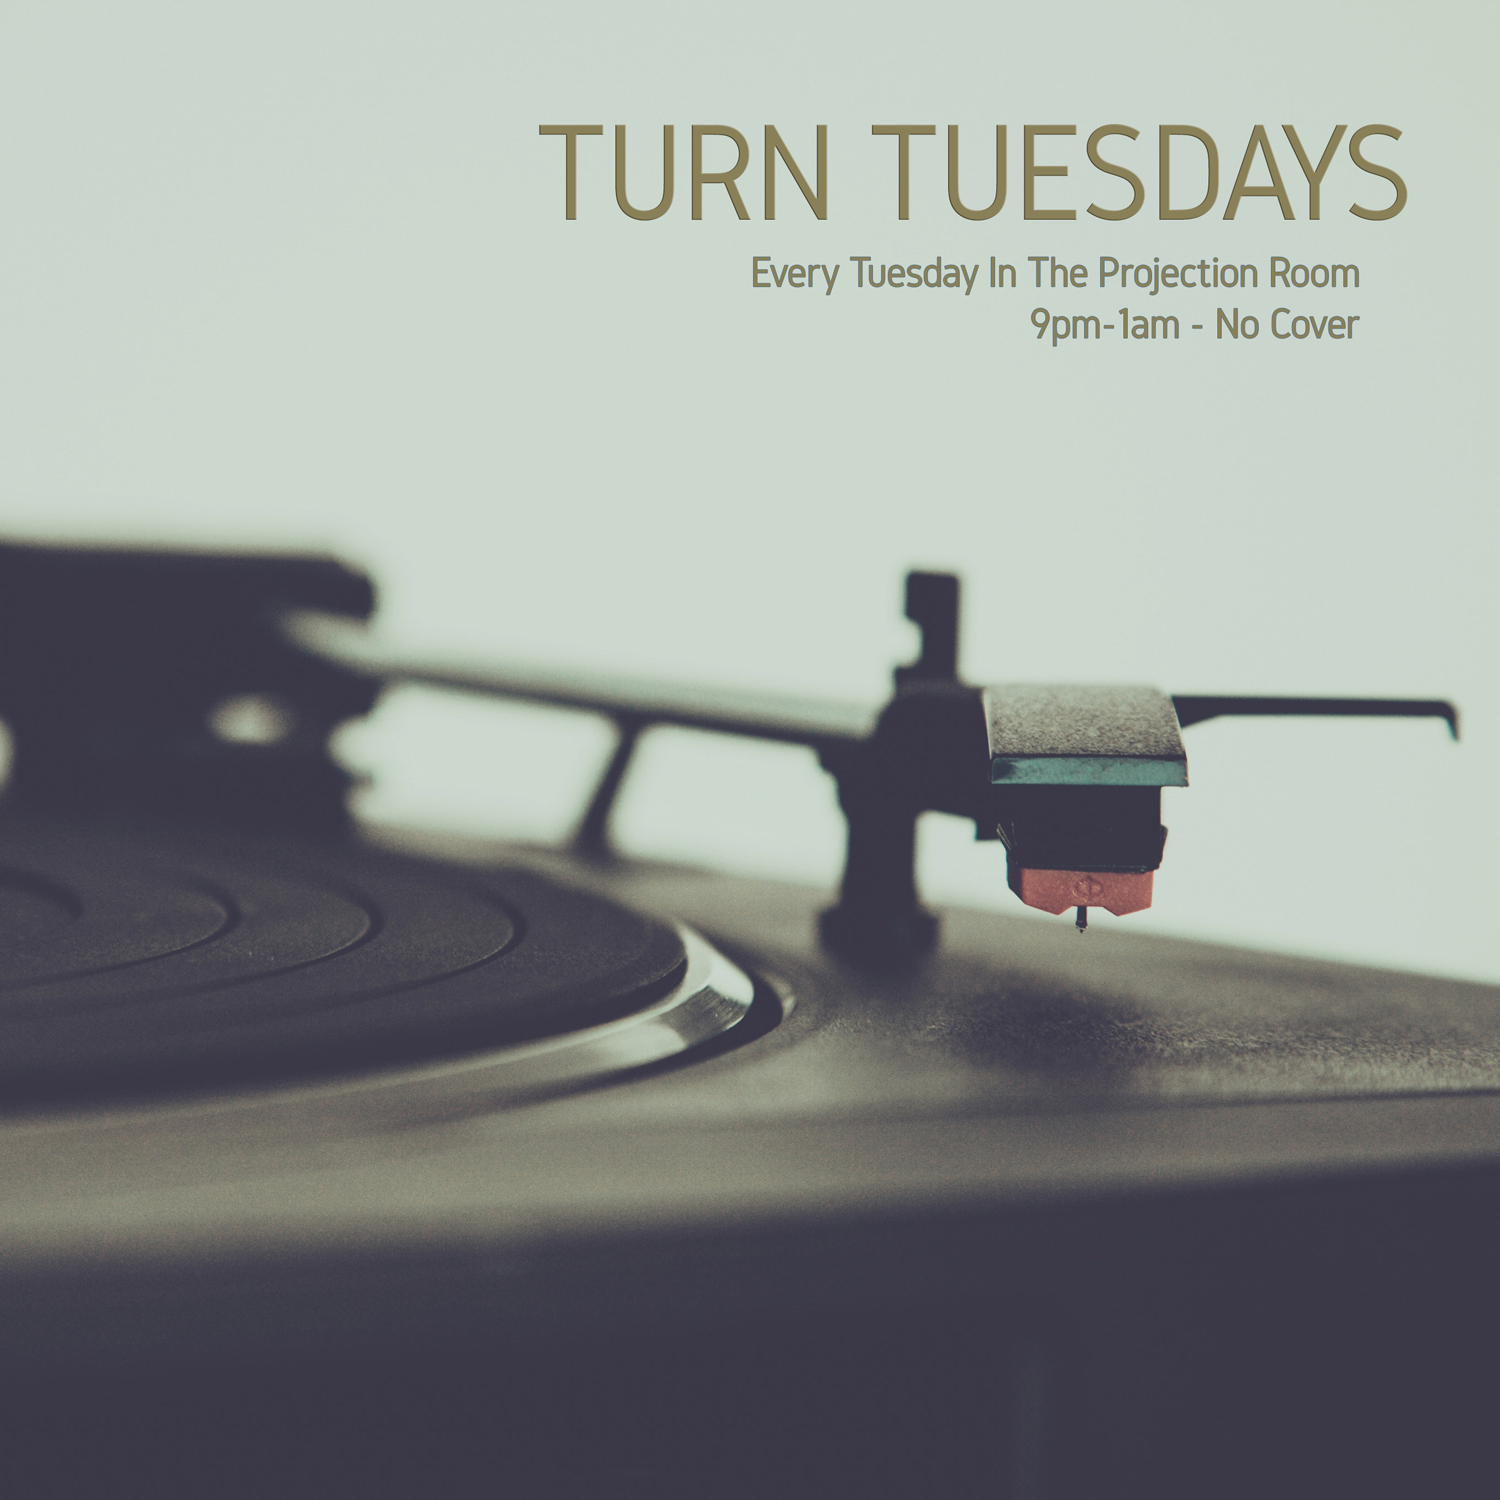 Tuesday Nights - TURN: Bring your Own Vinyl PartyEvery week Adam Fink + Bryan Sea host an open mic style DJ platform where you bring your own records and share some of your favourite tunes with other vinyl lovers. All of the necessary equipment will be at the bar. Just be sure to bring yourself and a handful of your favourite vinyl records! Wanna guarantee yourself a spot behind the tables? Email us at turn@foxcabaret.com to book a spot during one of our free play hours.9pm —1am in The Projection Room   FreeSponsored by Ignite Pizzeria